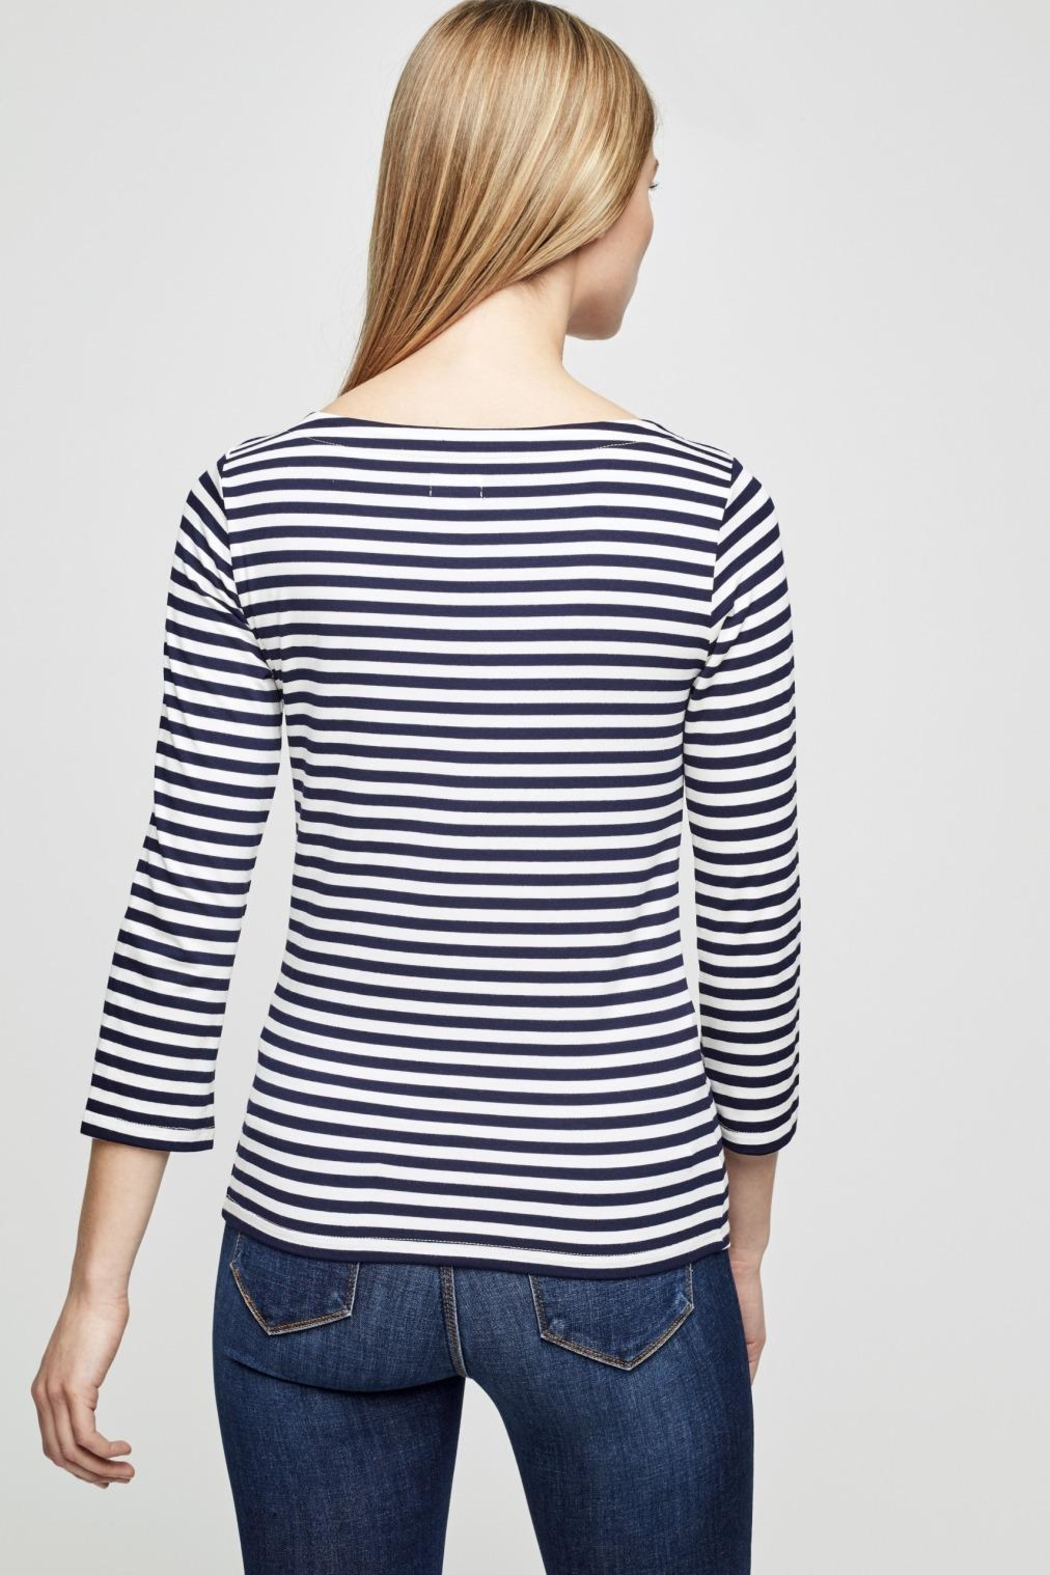 L'Agence Lucy Stripe Shirt - Side Cropped Image